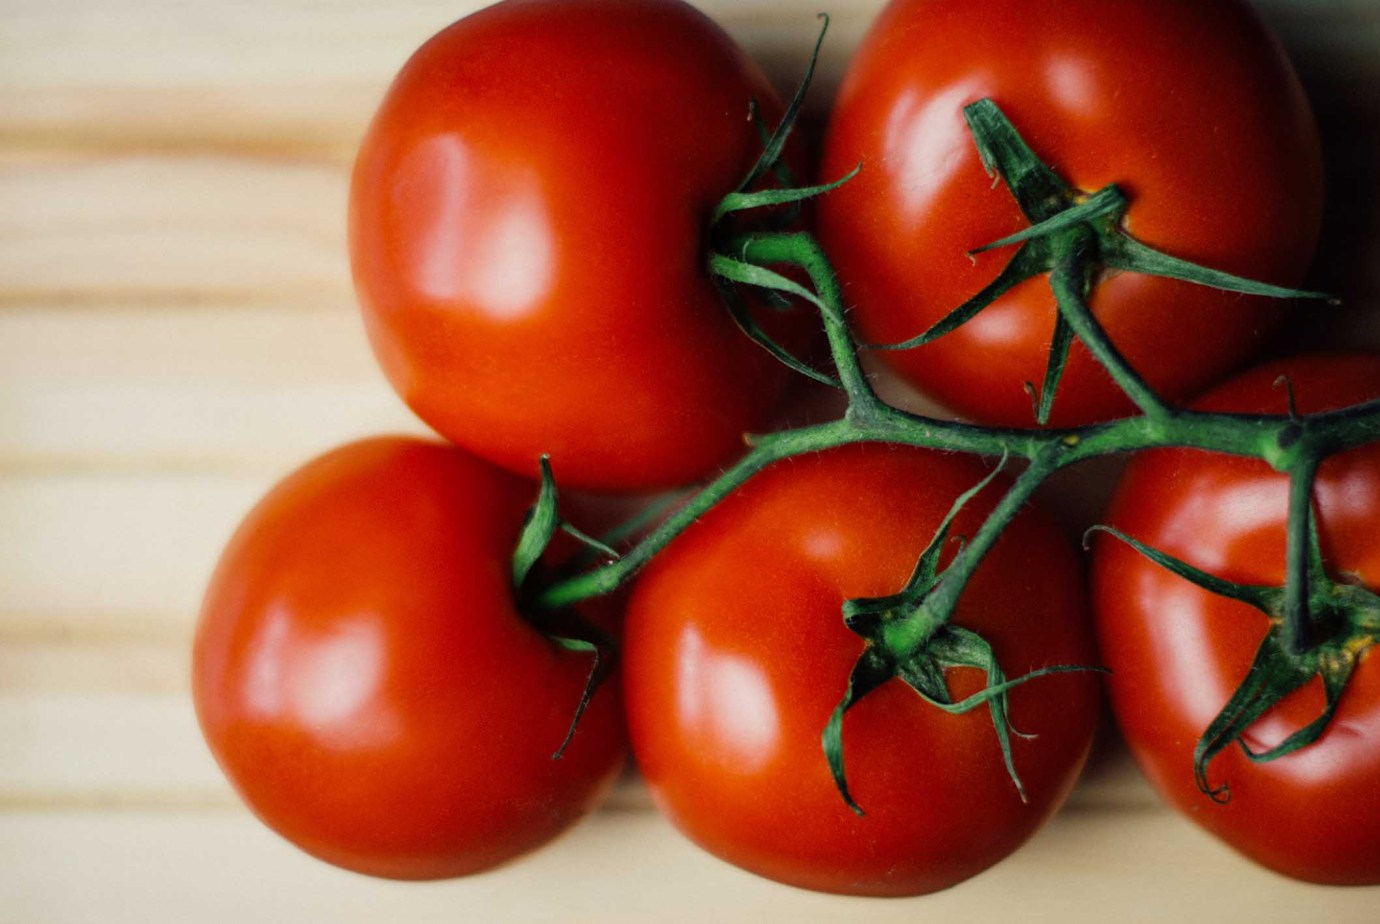 tomatoes as a natural way to look and feel your best